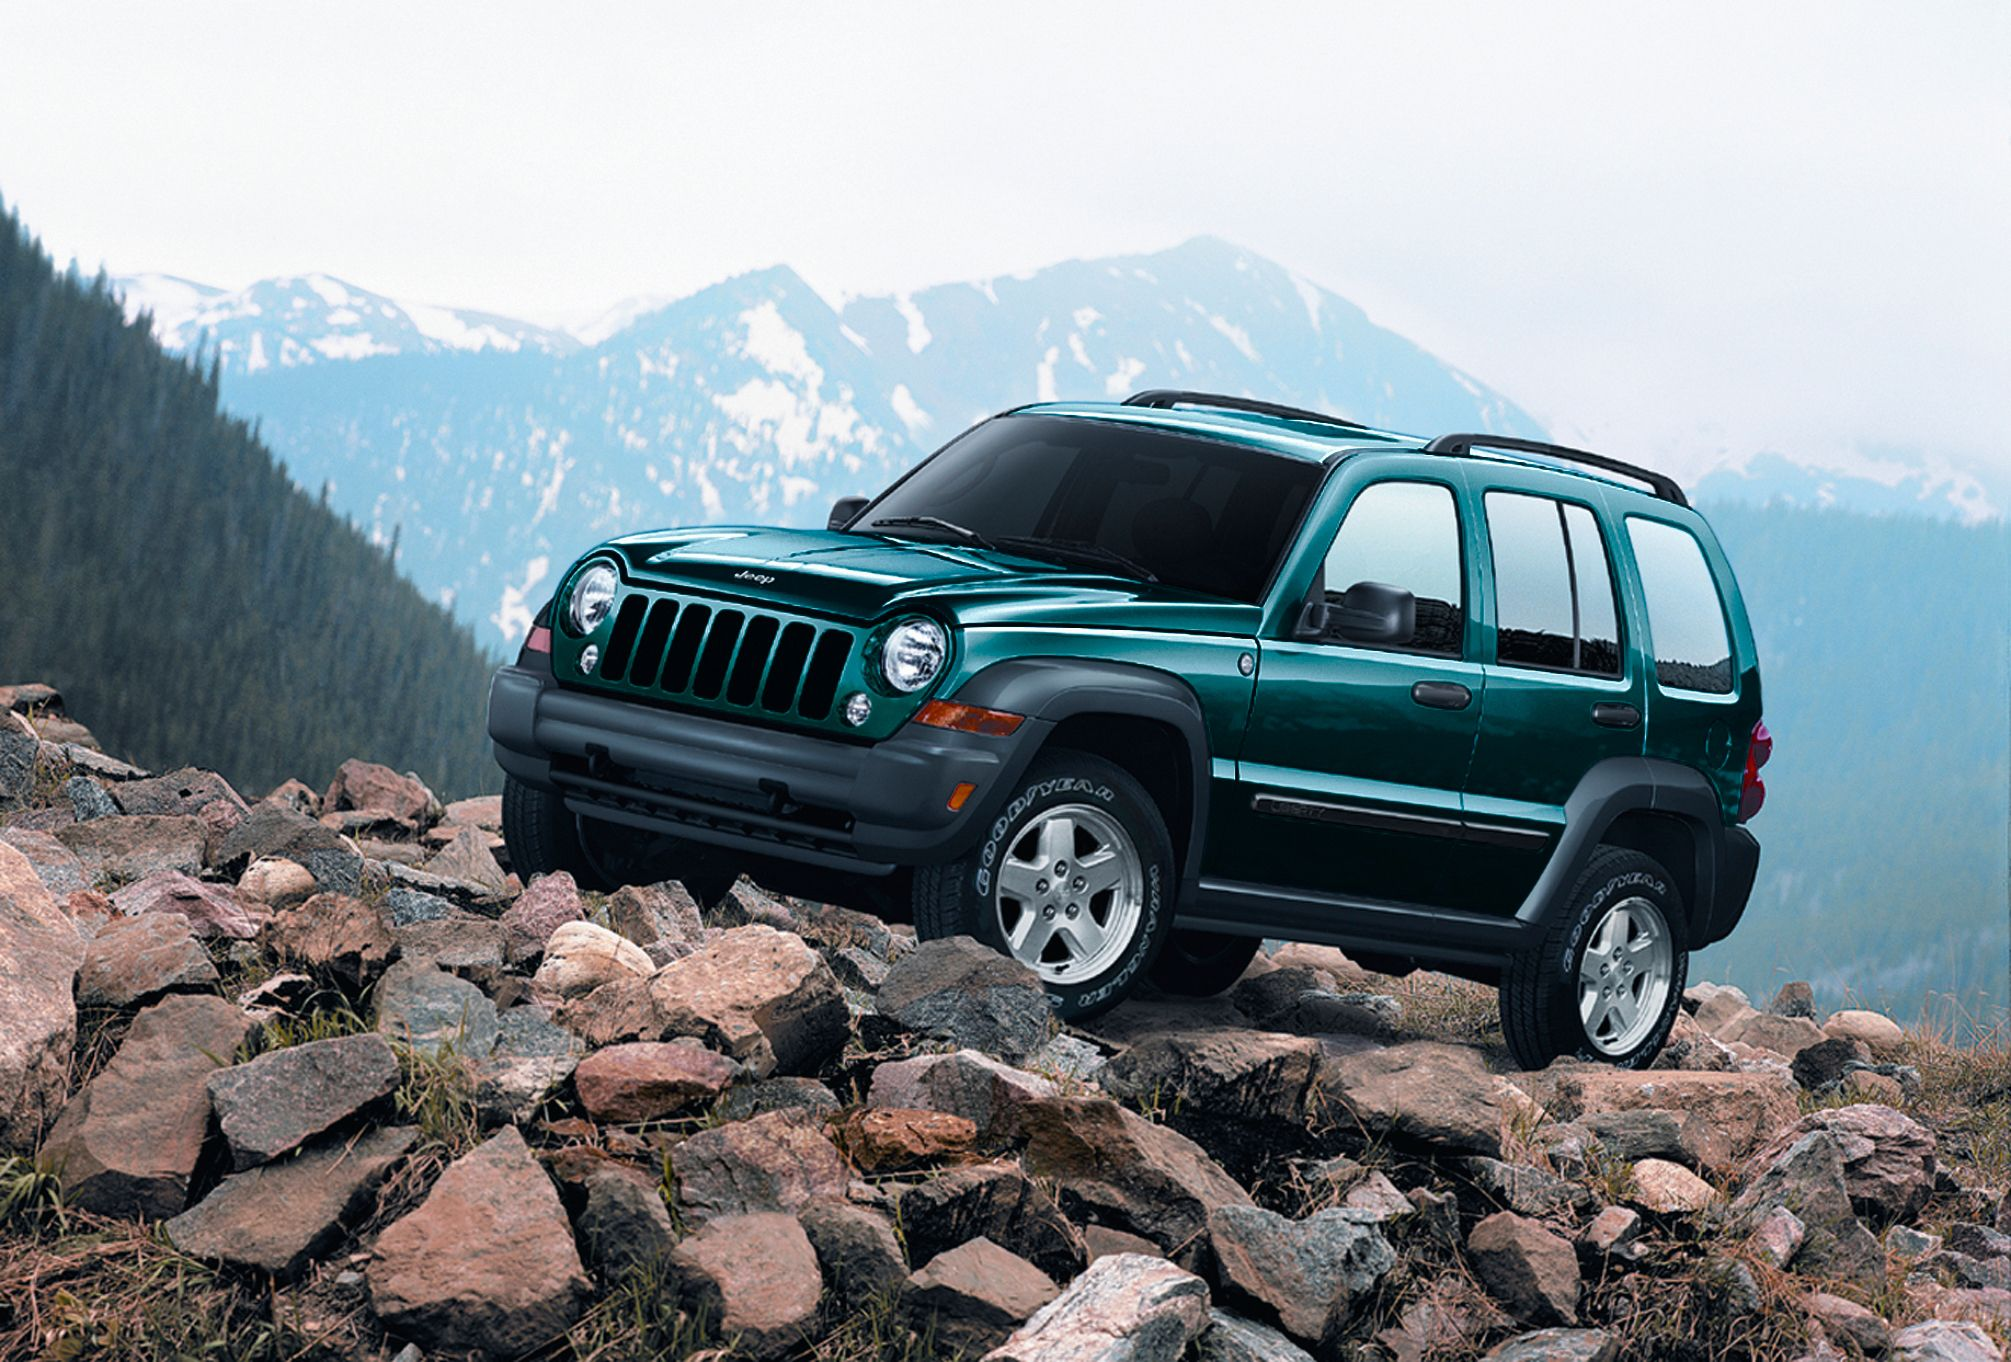 2006 Jeep Liberty Limited 4X4 CRD - New SUV Review